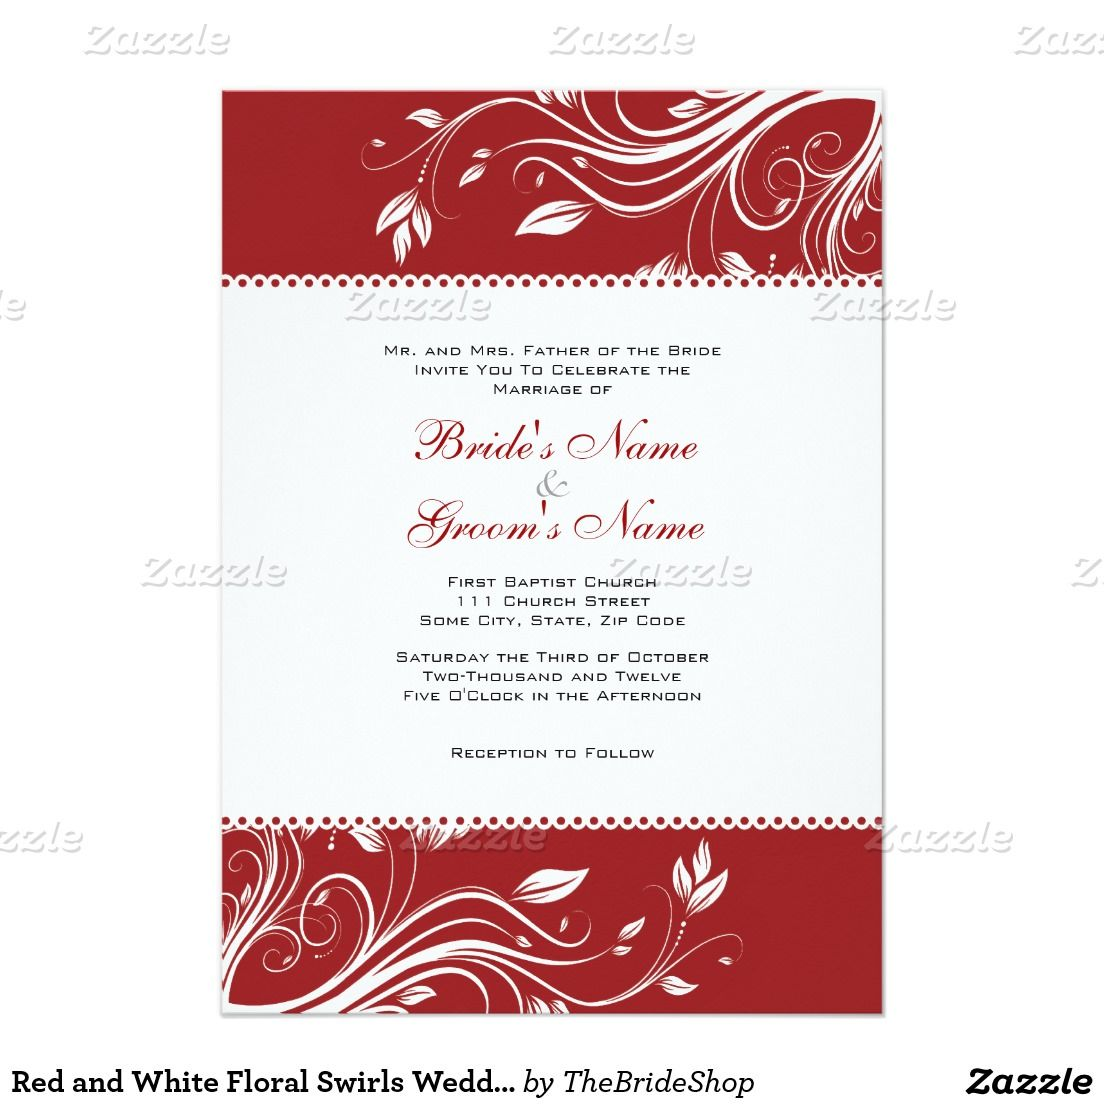 Red and White Floral Swirls Wedding Invitation | Floral, Weddings ...